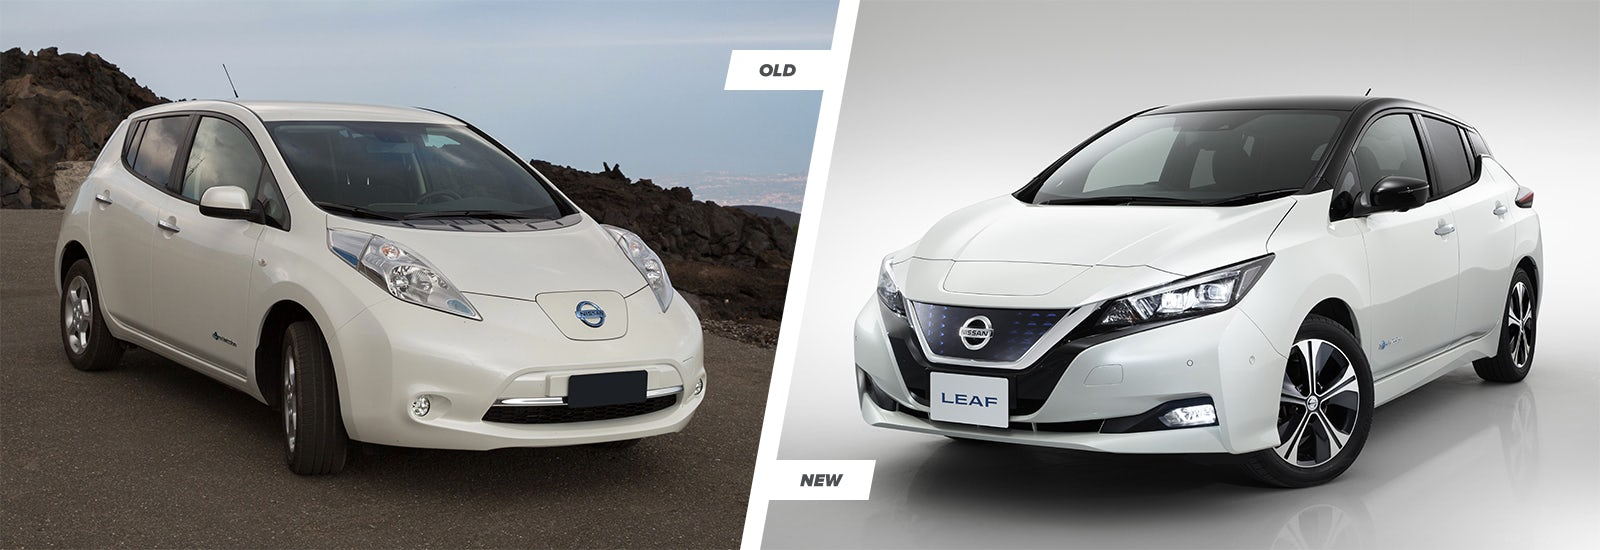 2018 nissan leaf price specs release date carwow. Black Bedroom Furniture Sets. Home Design Ideas